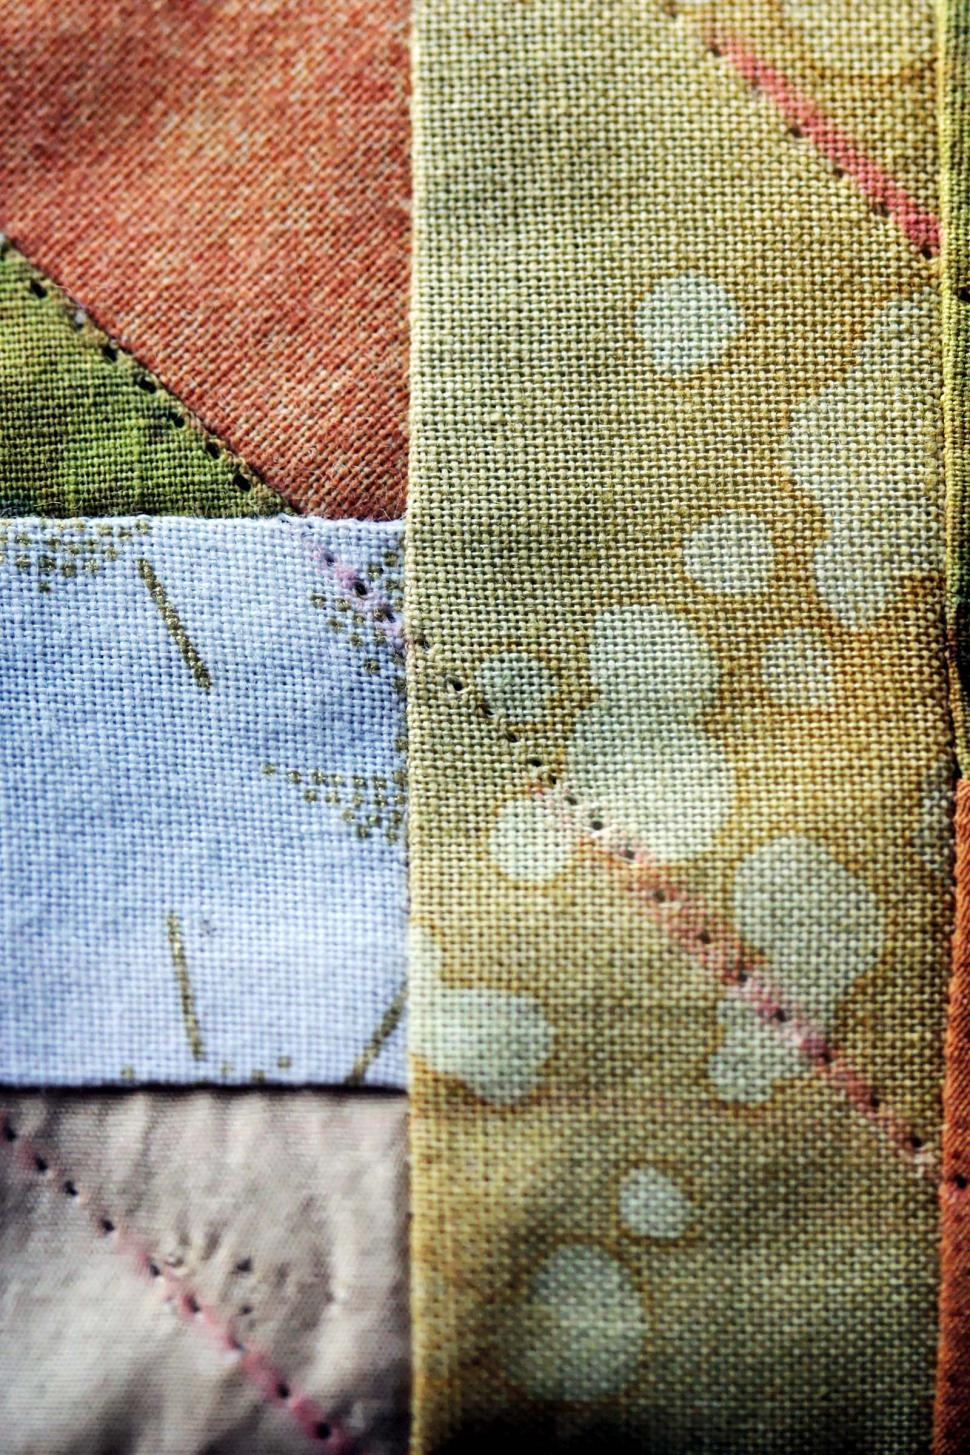 Quilted Fabric Get Free Stock Photos Of Quilted Fabric Background Online